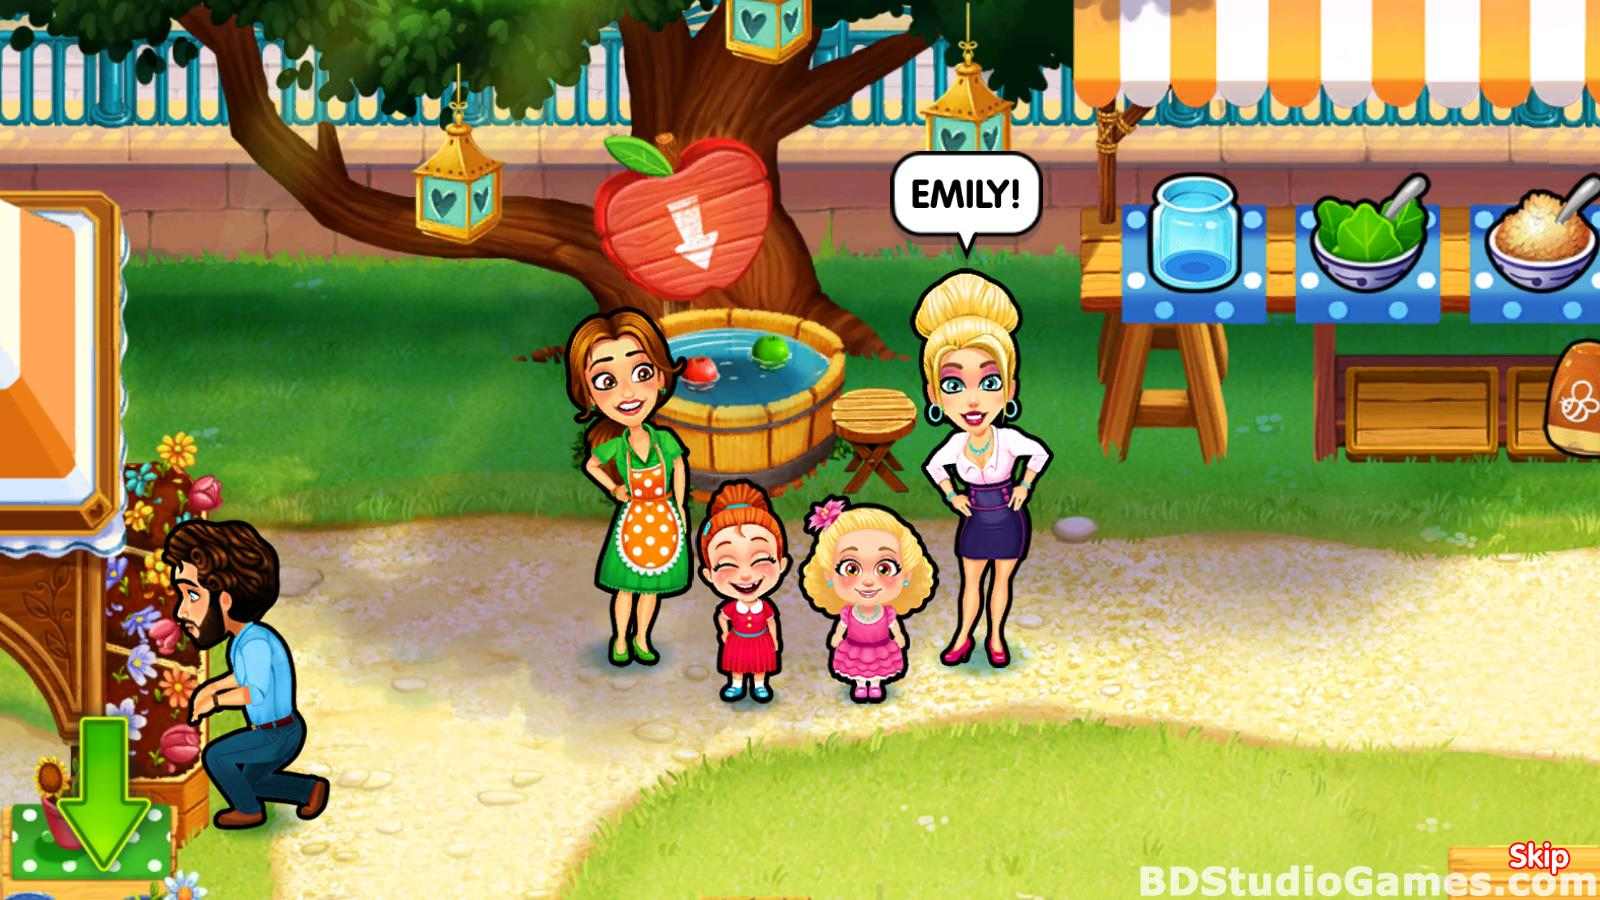 Delicious: Emily's Road Trip Collector's Edition Free Download Screenshots 11